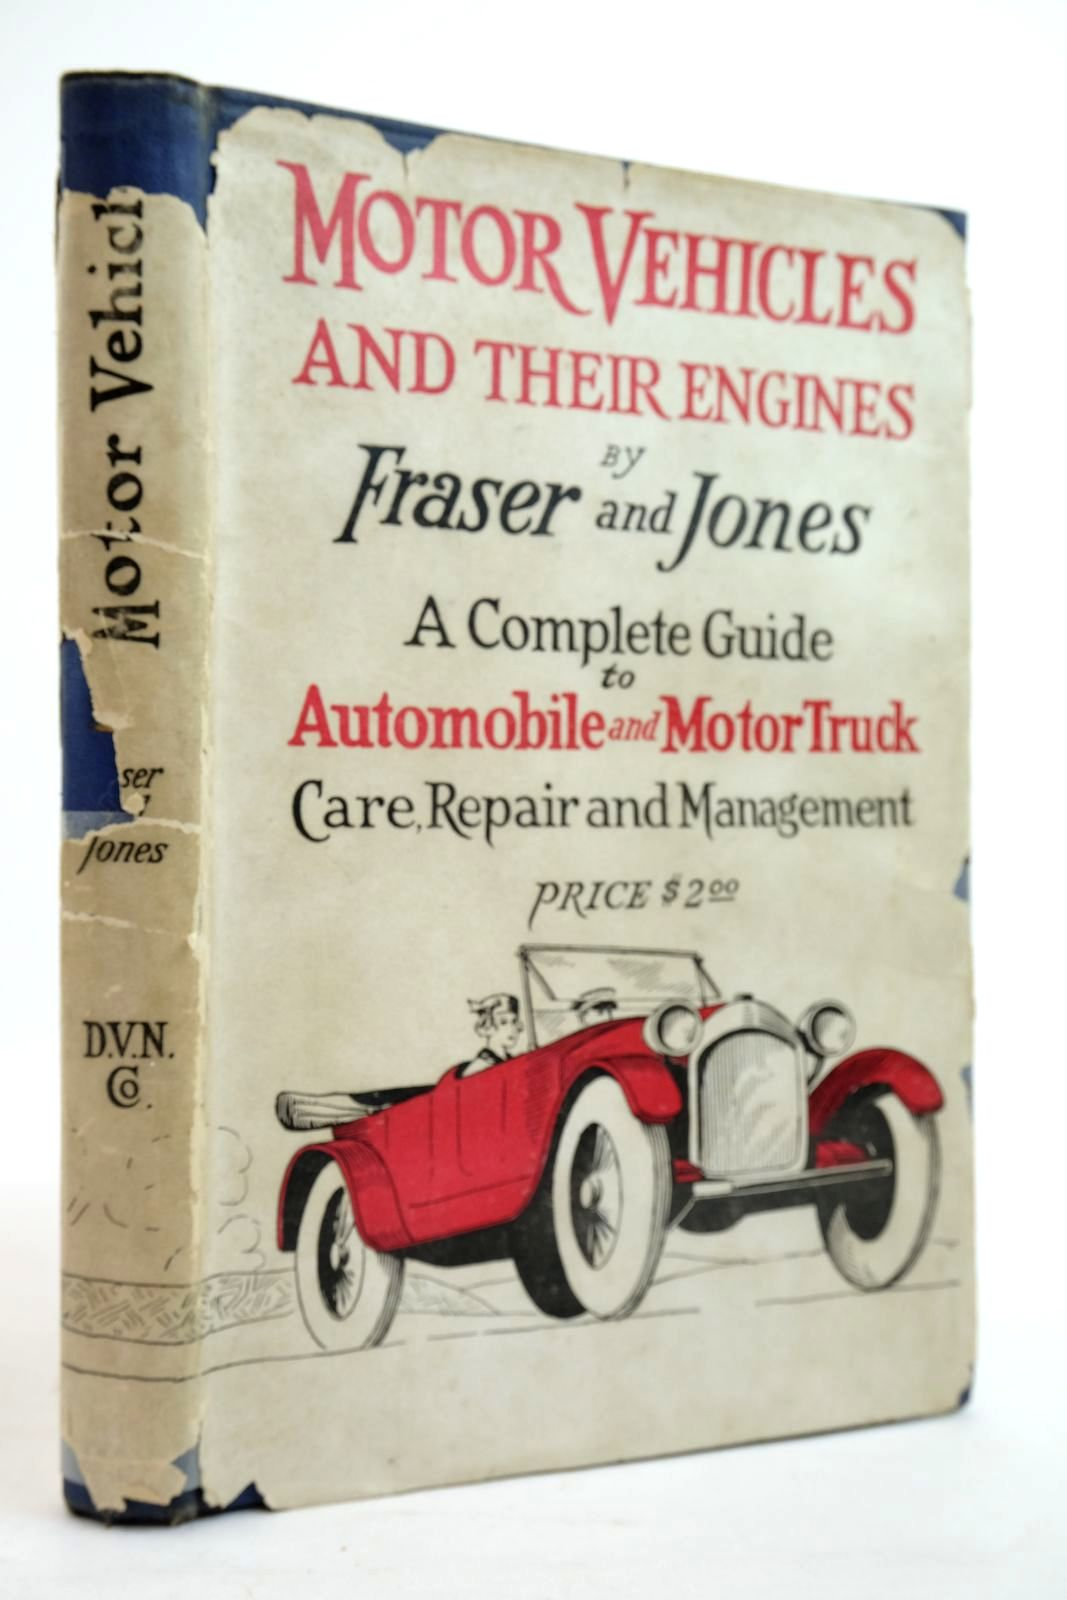 Photo of MOTOR VEHICLES AND THEIR ENGINES written by Fraser, Edward S. Jones, Ralph B. published by D. Van Nostrand Company (STOCK CODE: 2134573)  for sale by Stella & Rose's Books